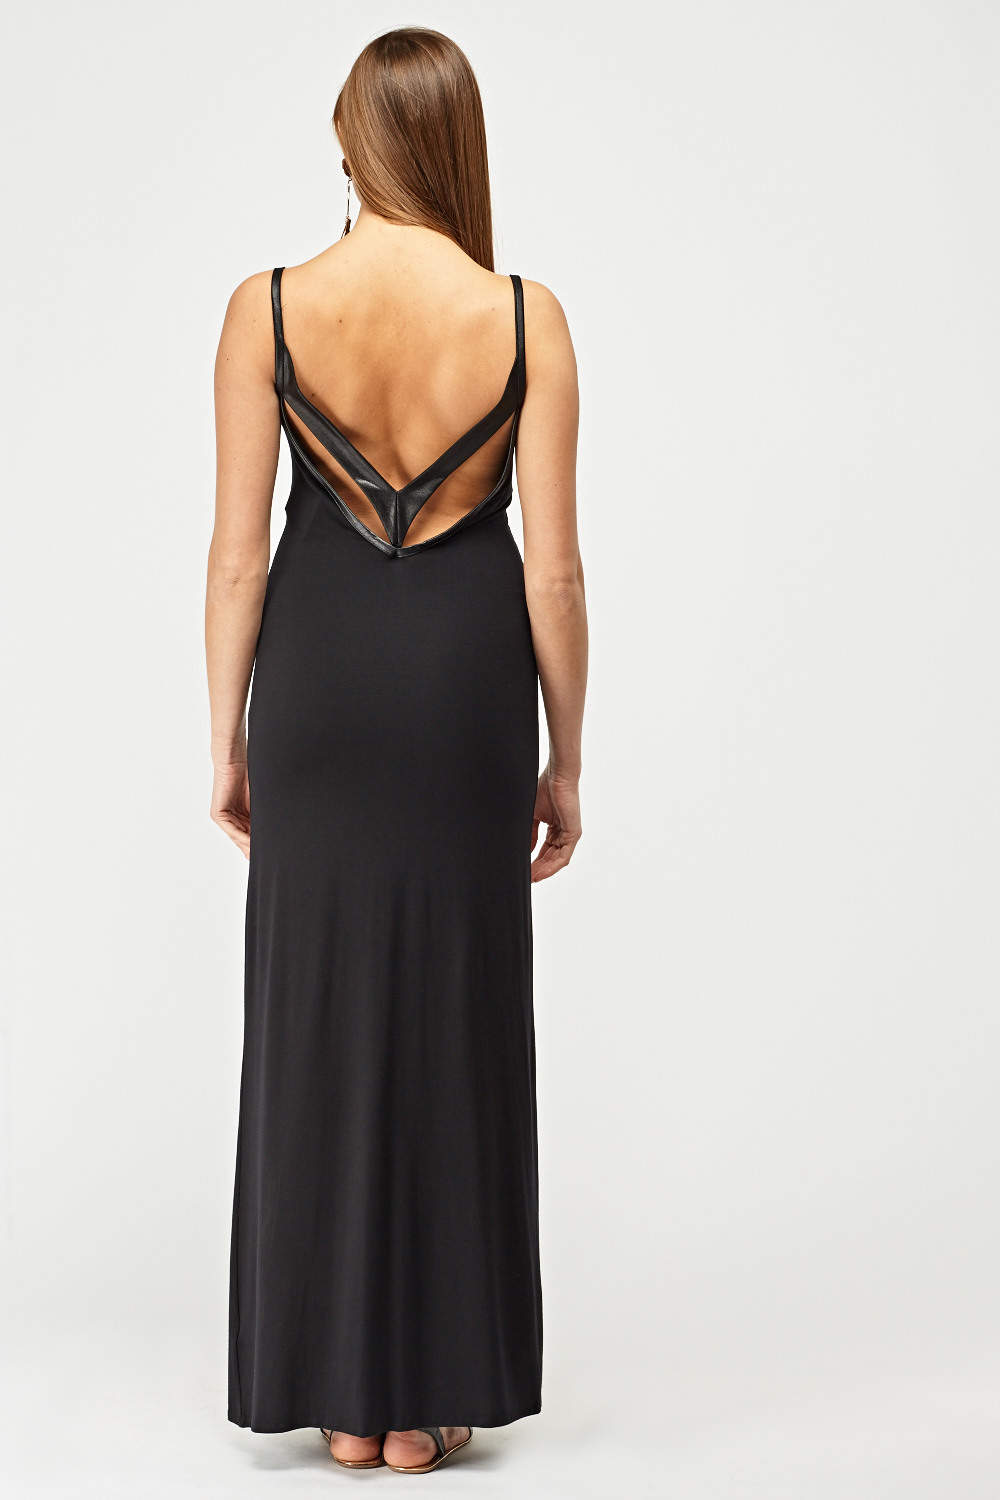 664ceafa866 Faux Leather Trim Maxi Dress - Black - Just £5